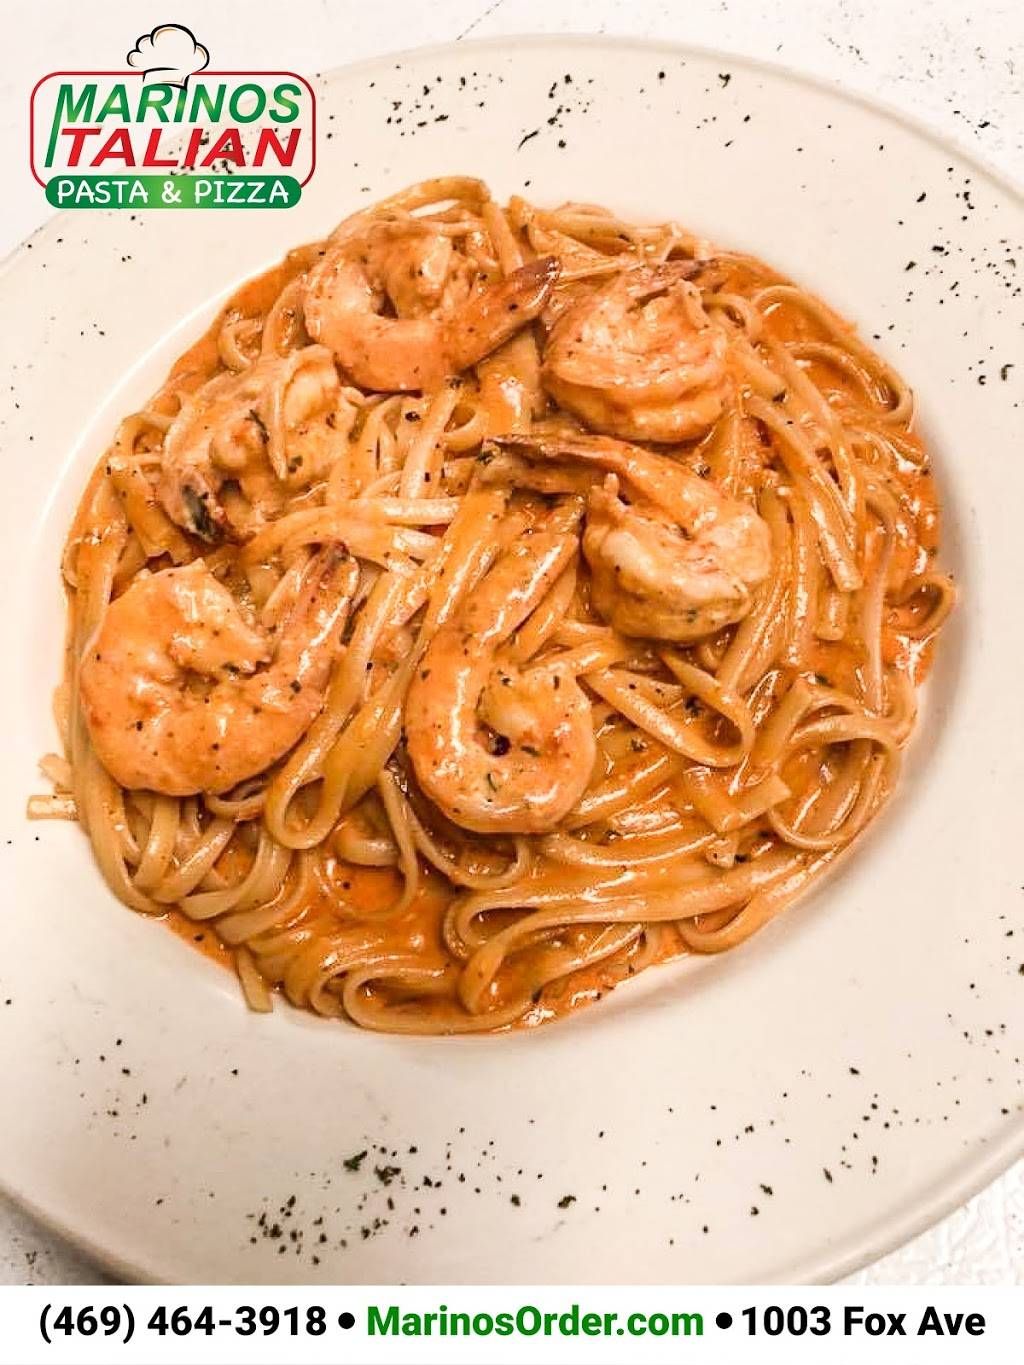 Marinos Italian Pasta & Pizza - meal delivery  | Photo 10 of 10 | Address: 1003 Fox Ave, Lewisville, TX 75067, USA | Phone: (469) 464-3918